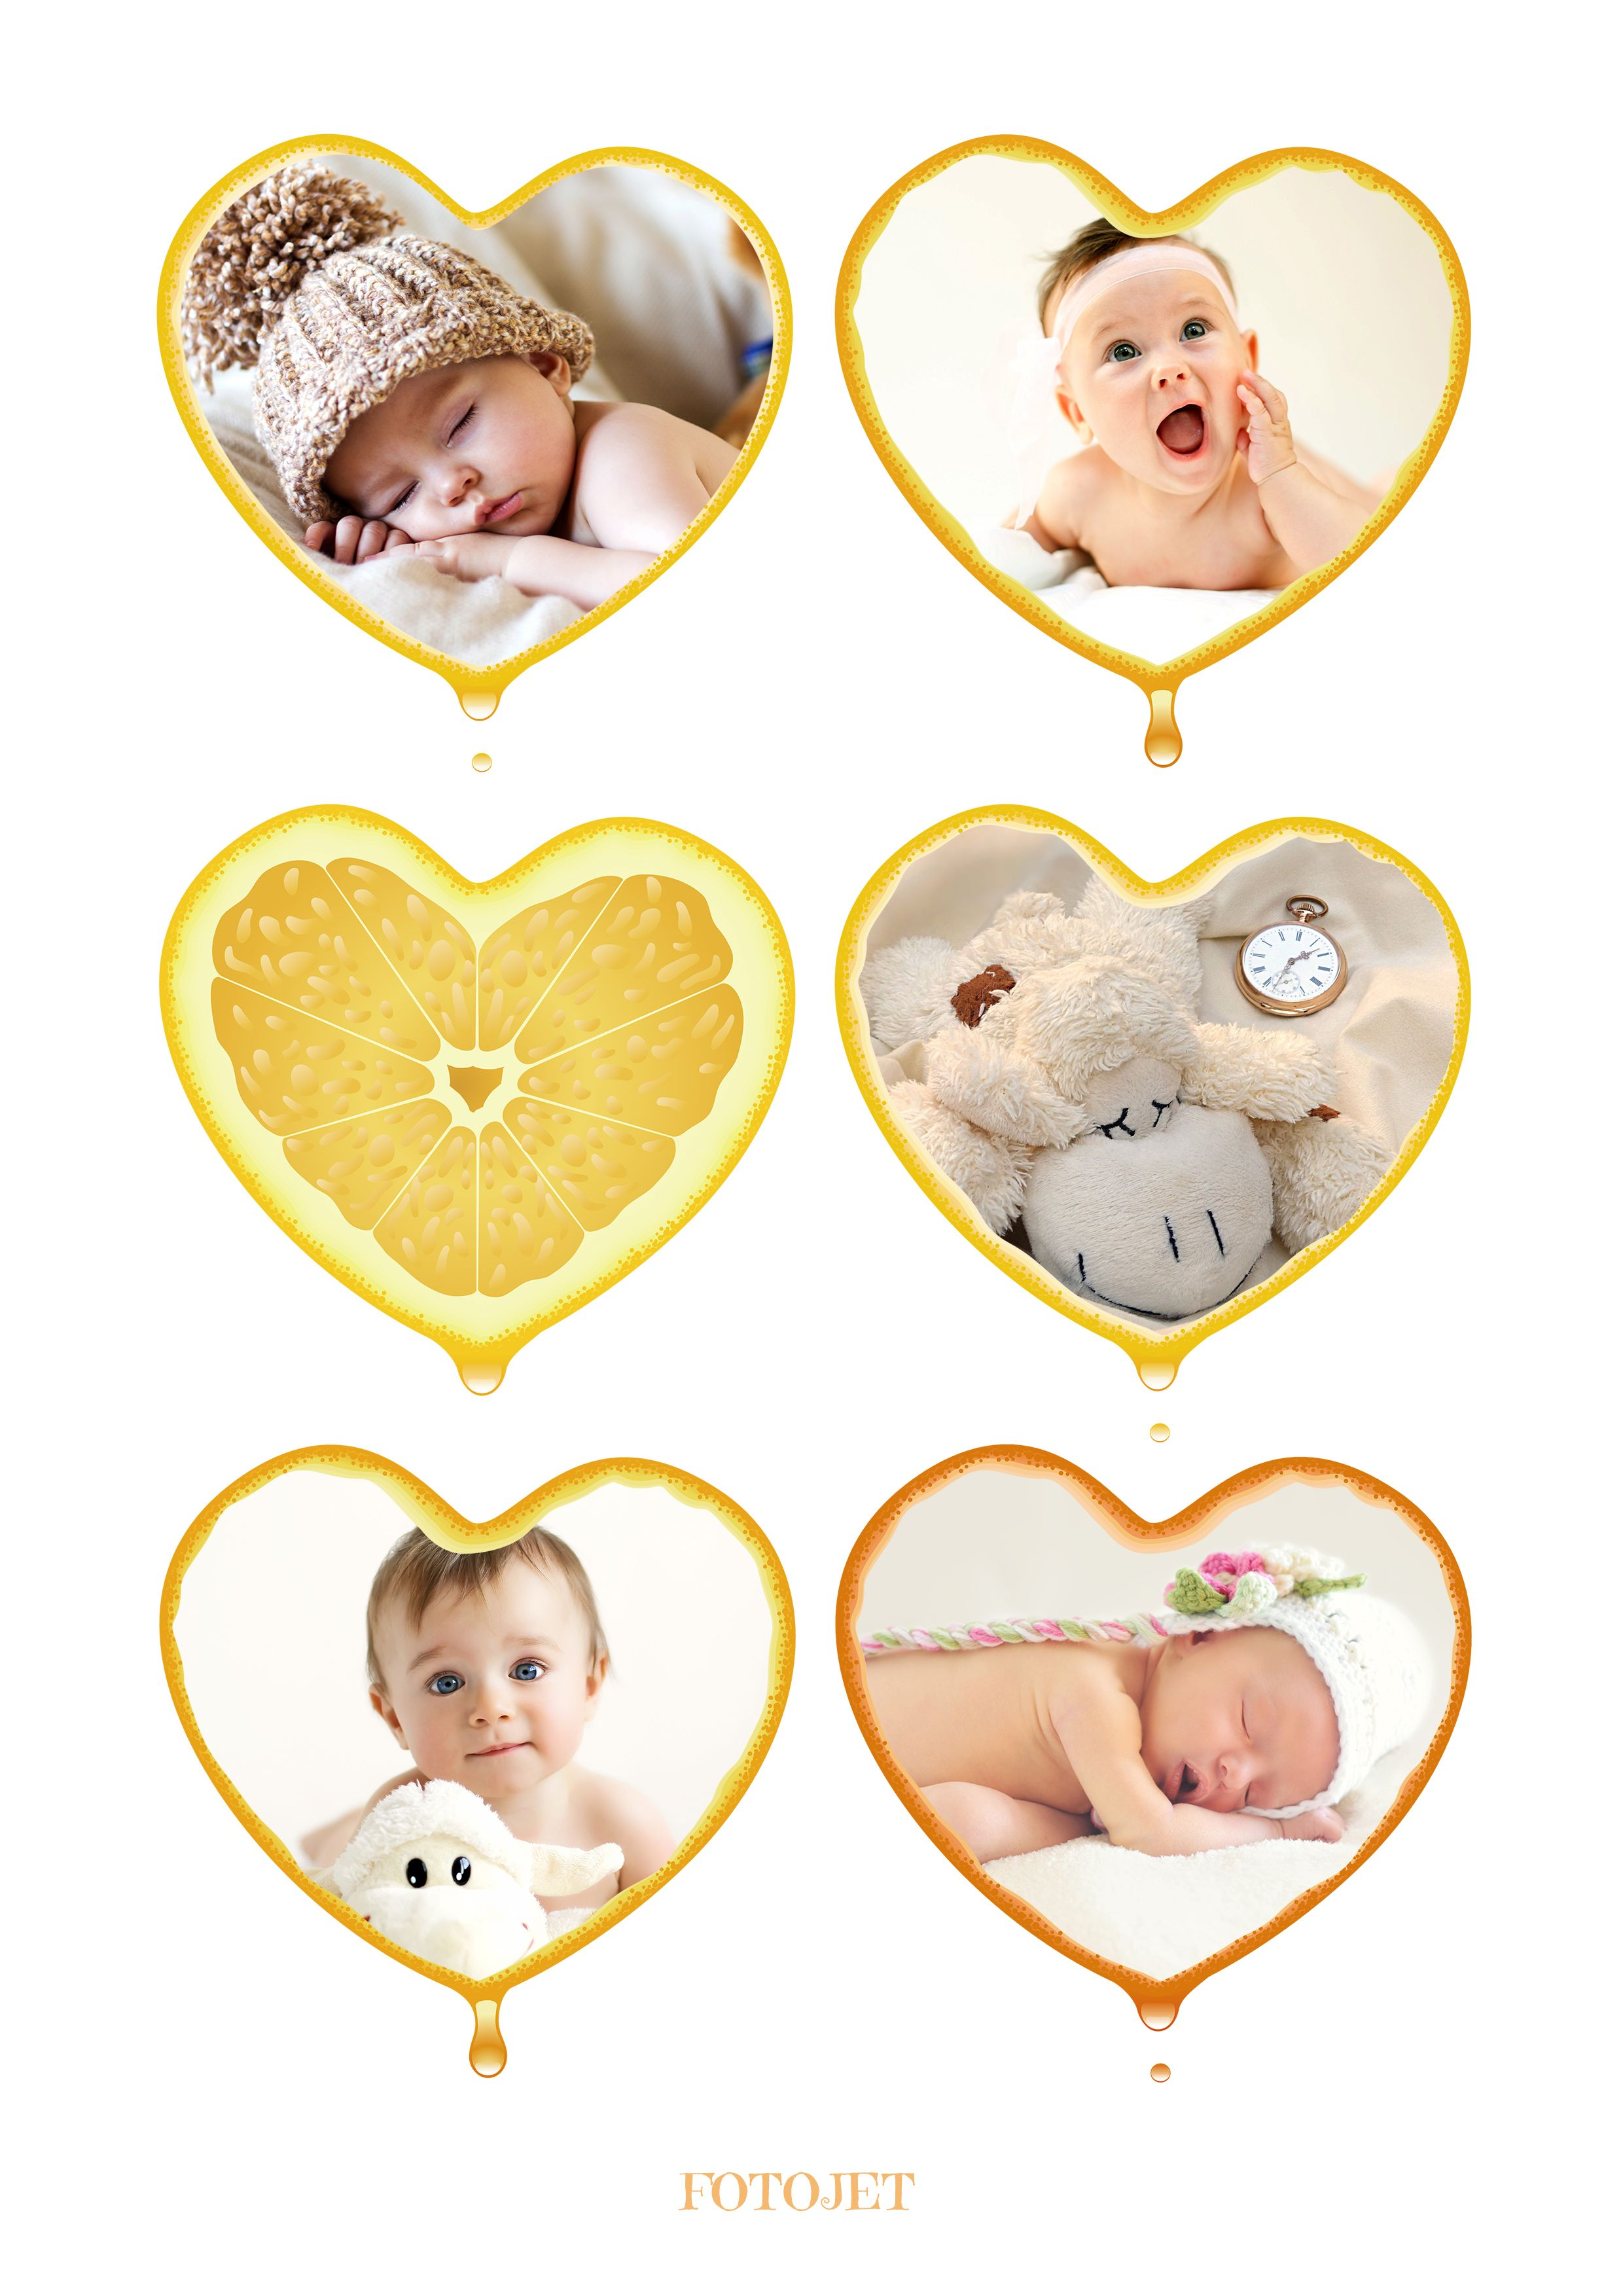 Baby Maker Free Online : maker, online, #babycollage, Creative, Record, Growth., Www.fotojet.com, Photo, Collages,, Collage,, Photos